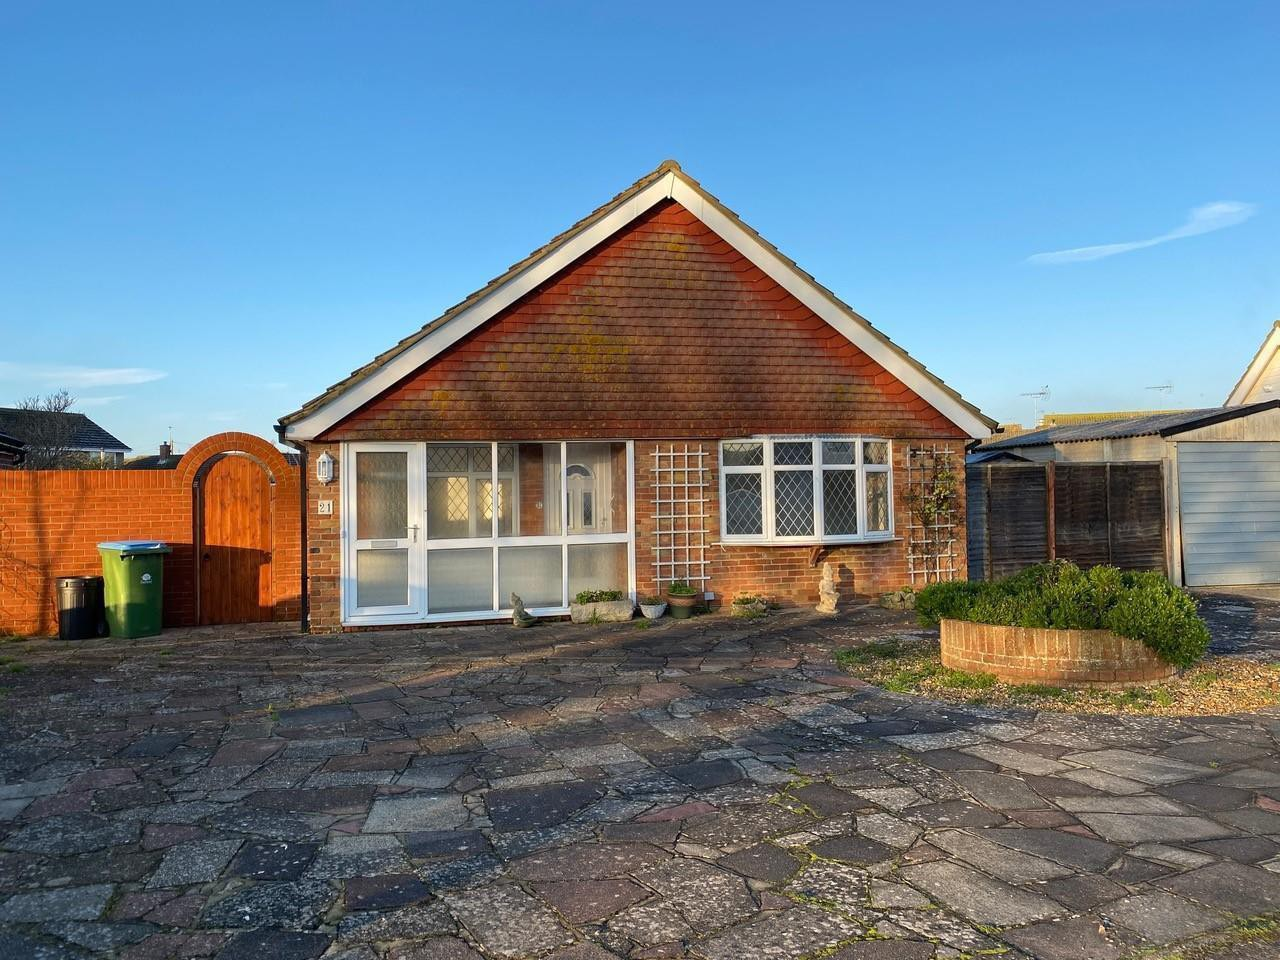 Bungalow to let in Pagham (Main)